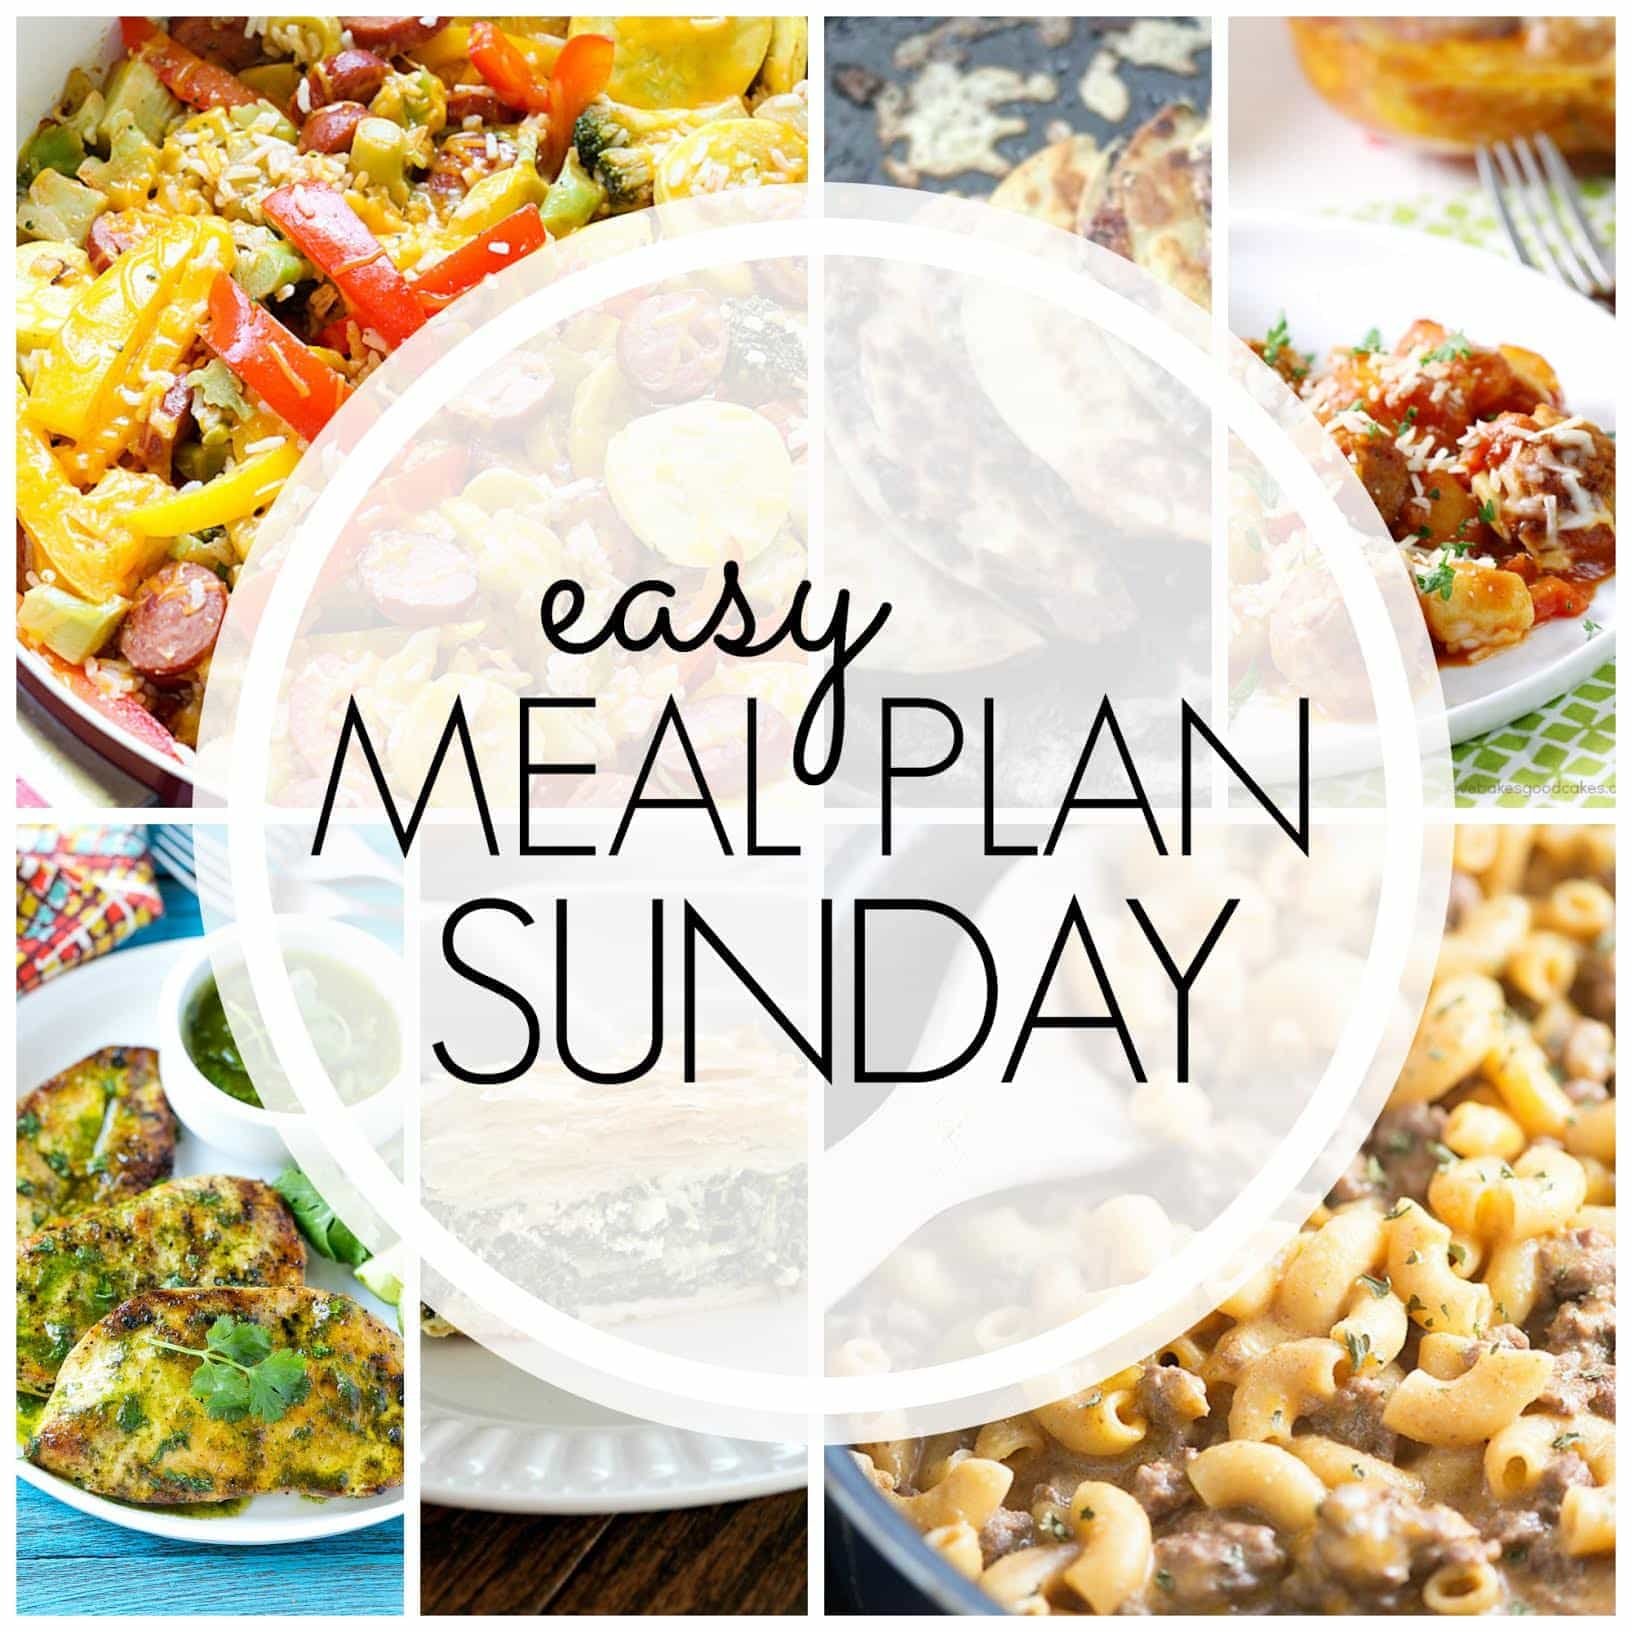 The BEST weekly meal plan around! We've collected 6 dinners, 1 breakfast, and 2 desserts....all tried and true and guaranteed to make your life easier!